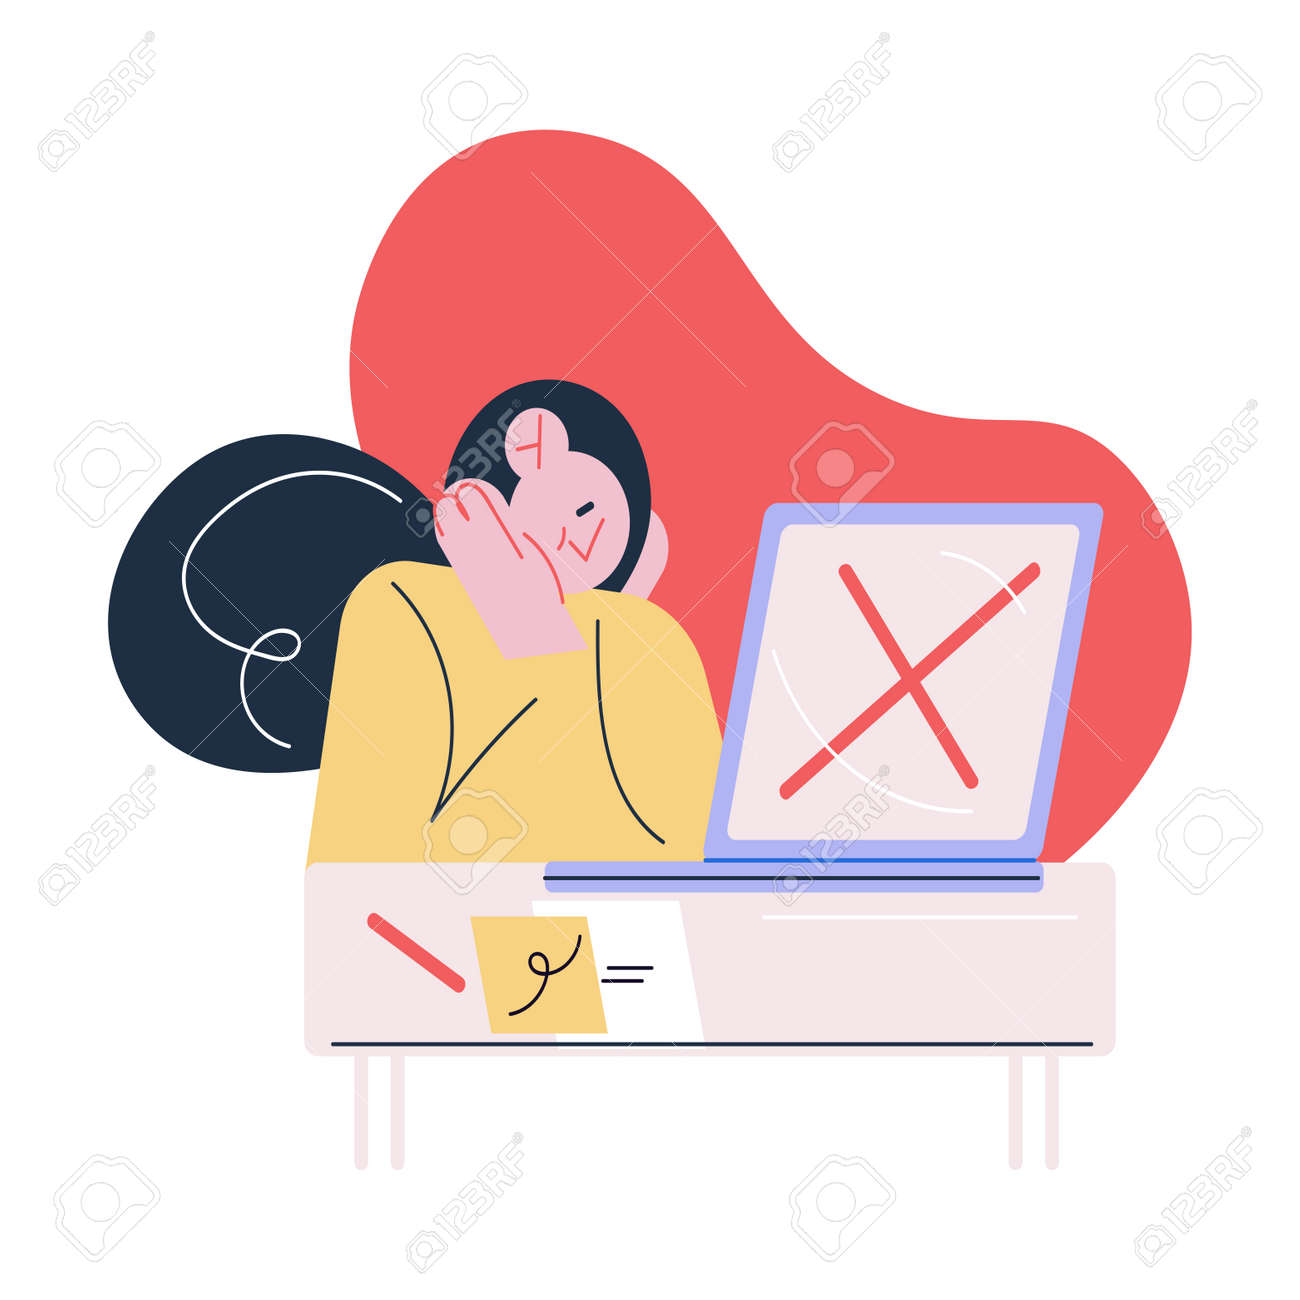 Woman applicant sitting near laptop and suffering from getting vacancy refusal - 166188947